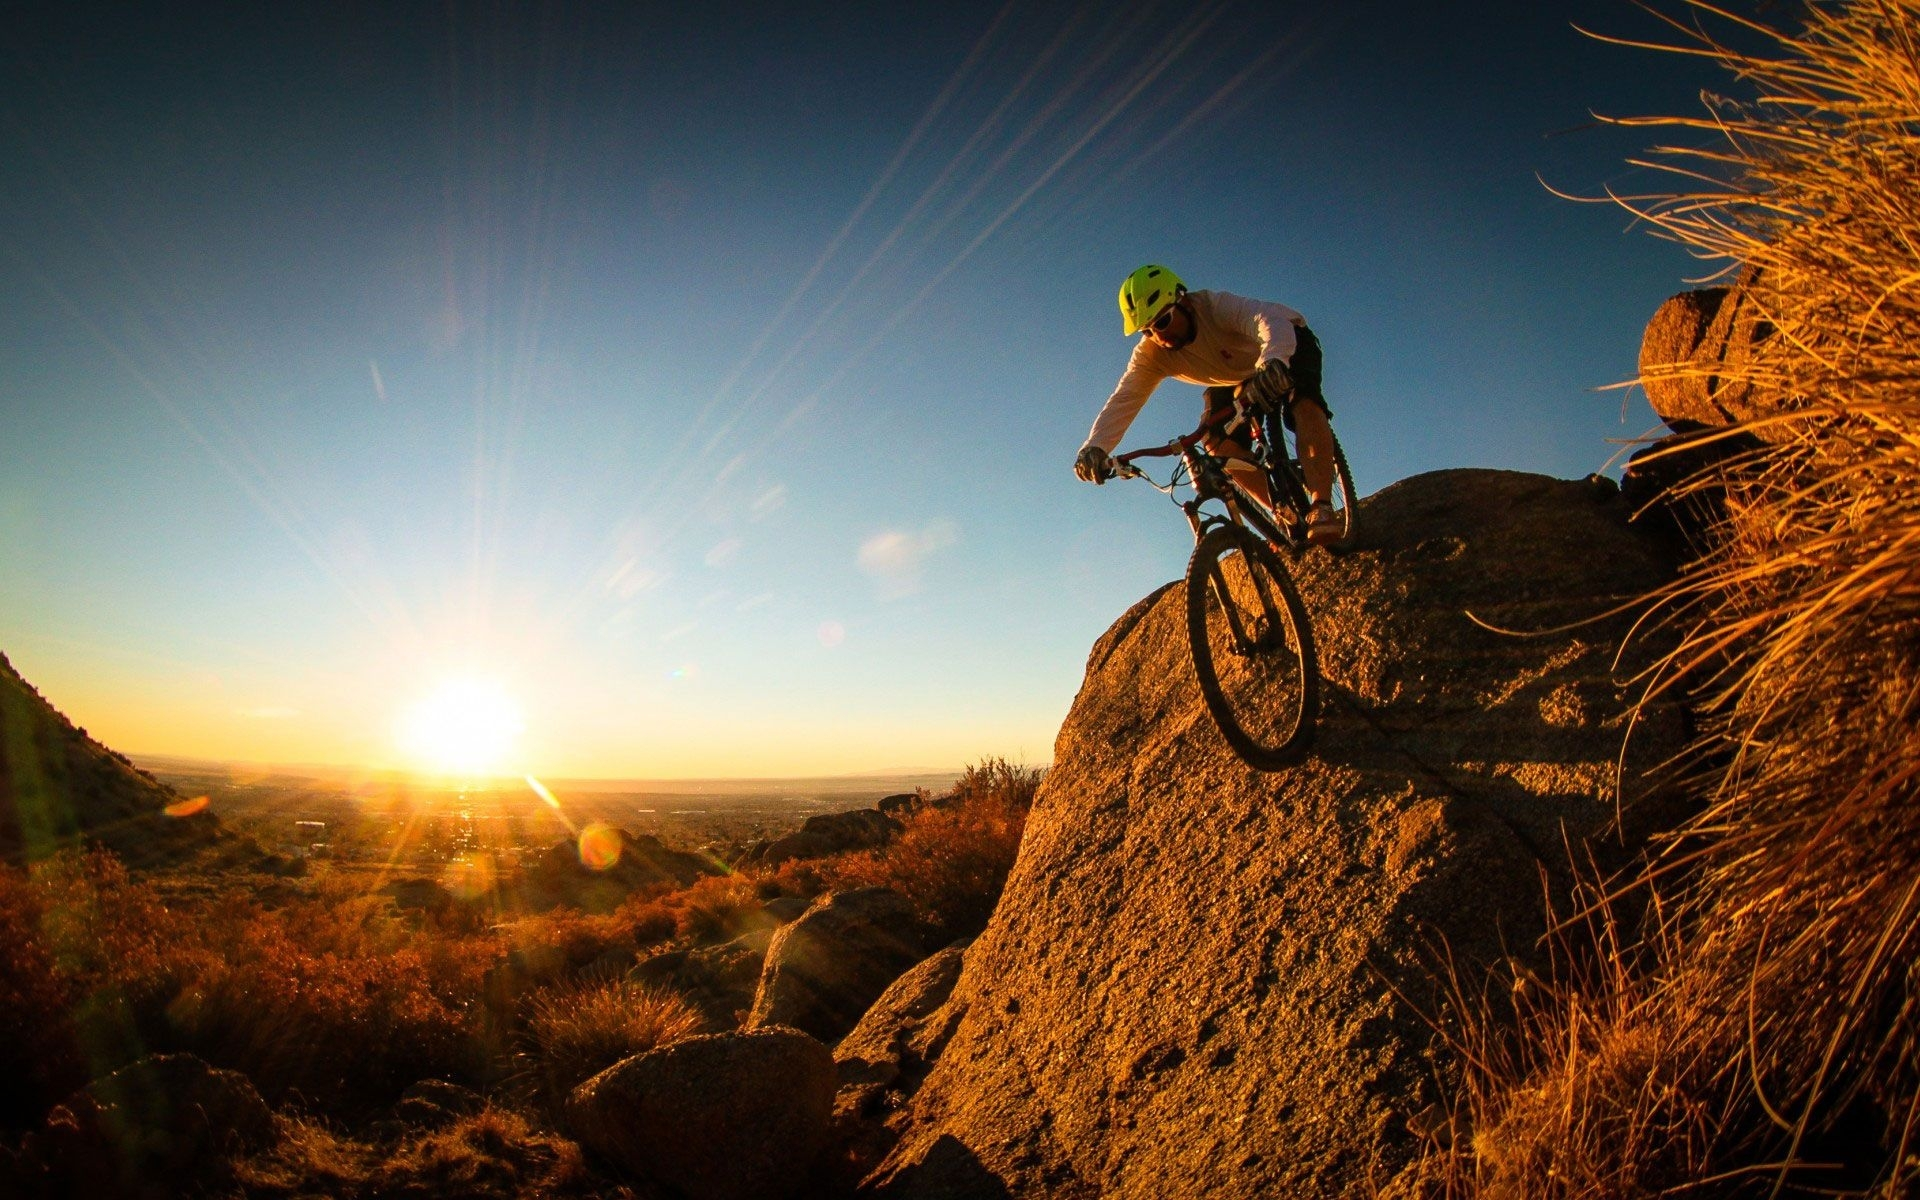 mountain biking – hd iphone wallpaper | mtb related | pinterest